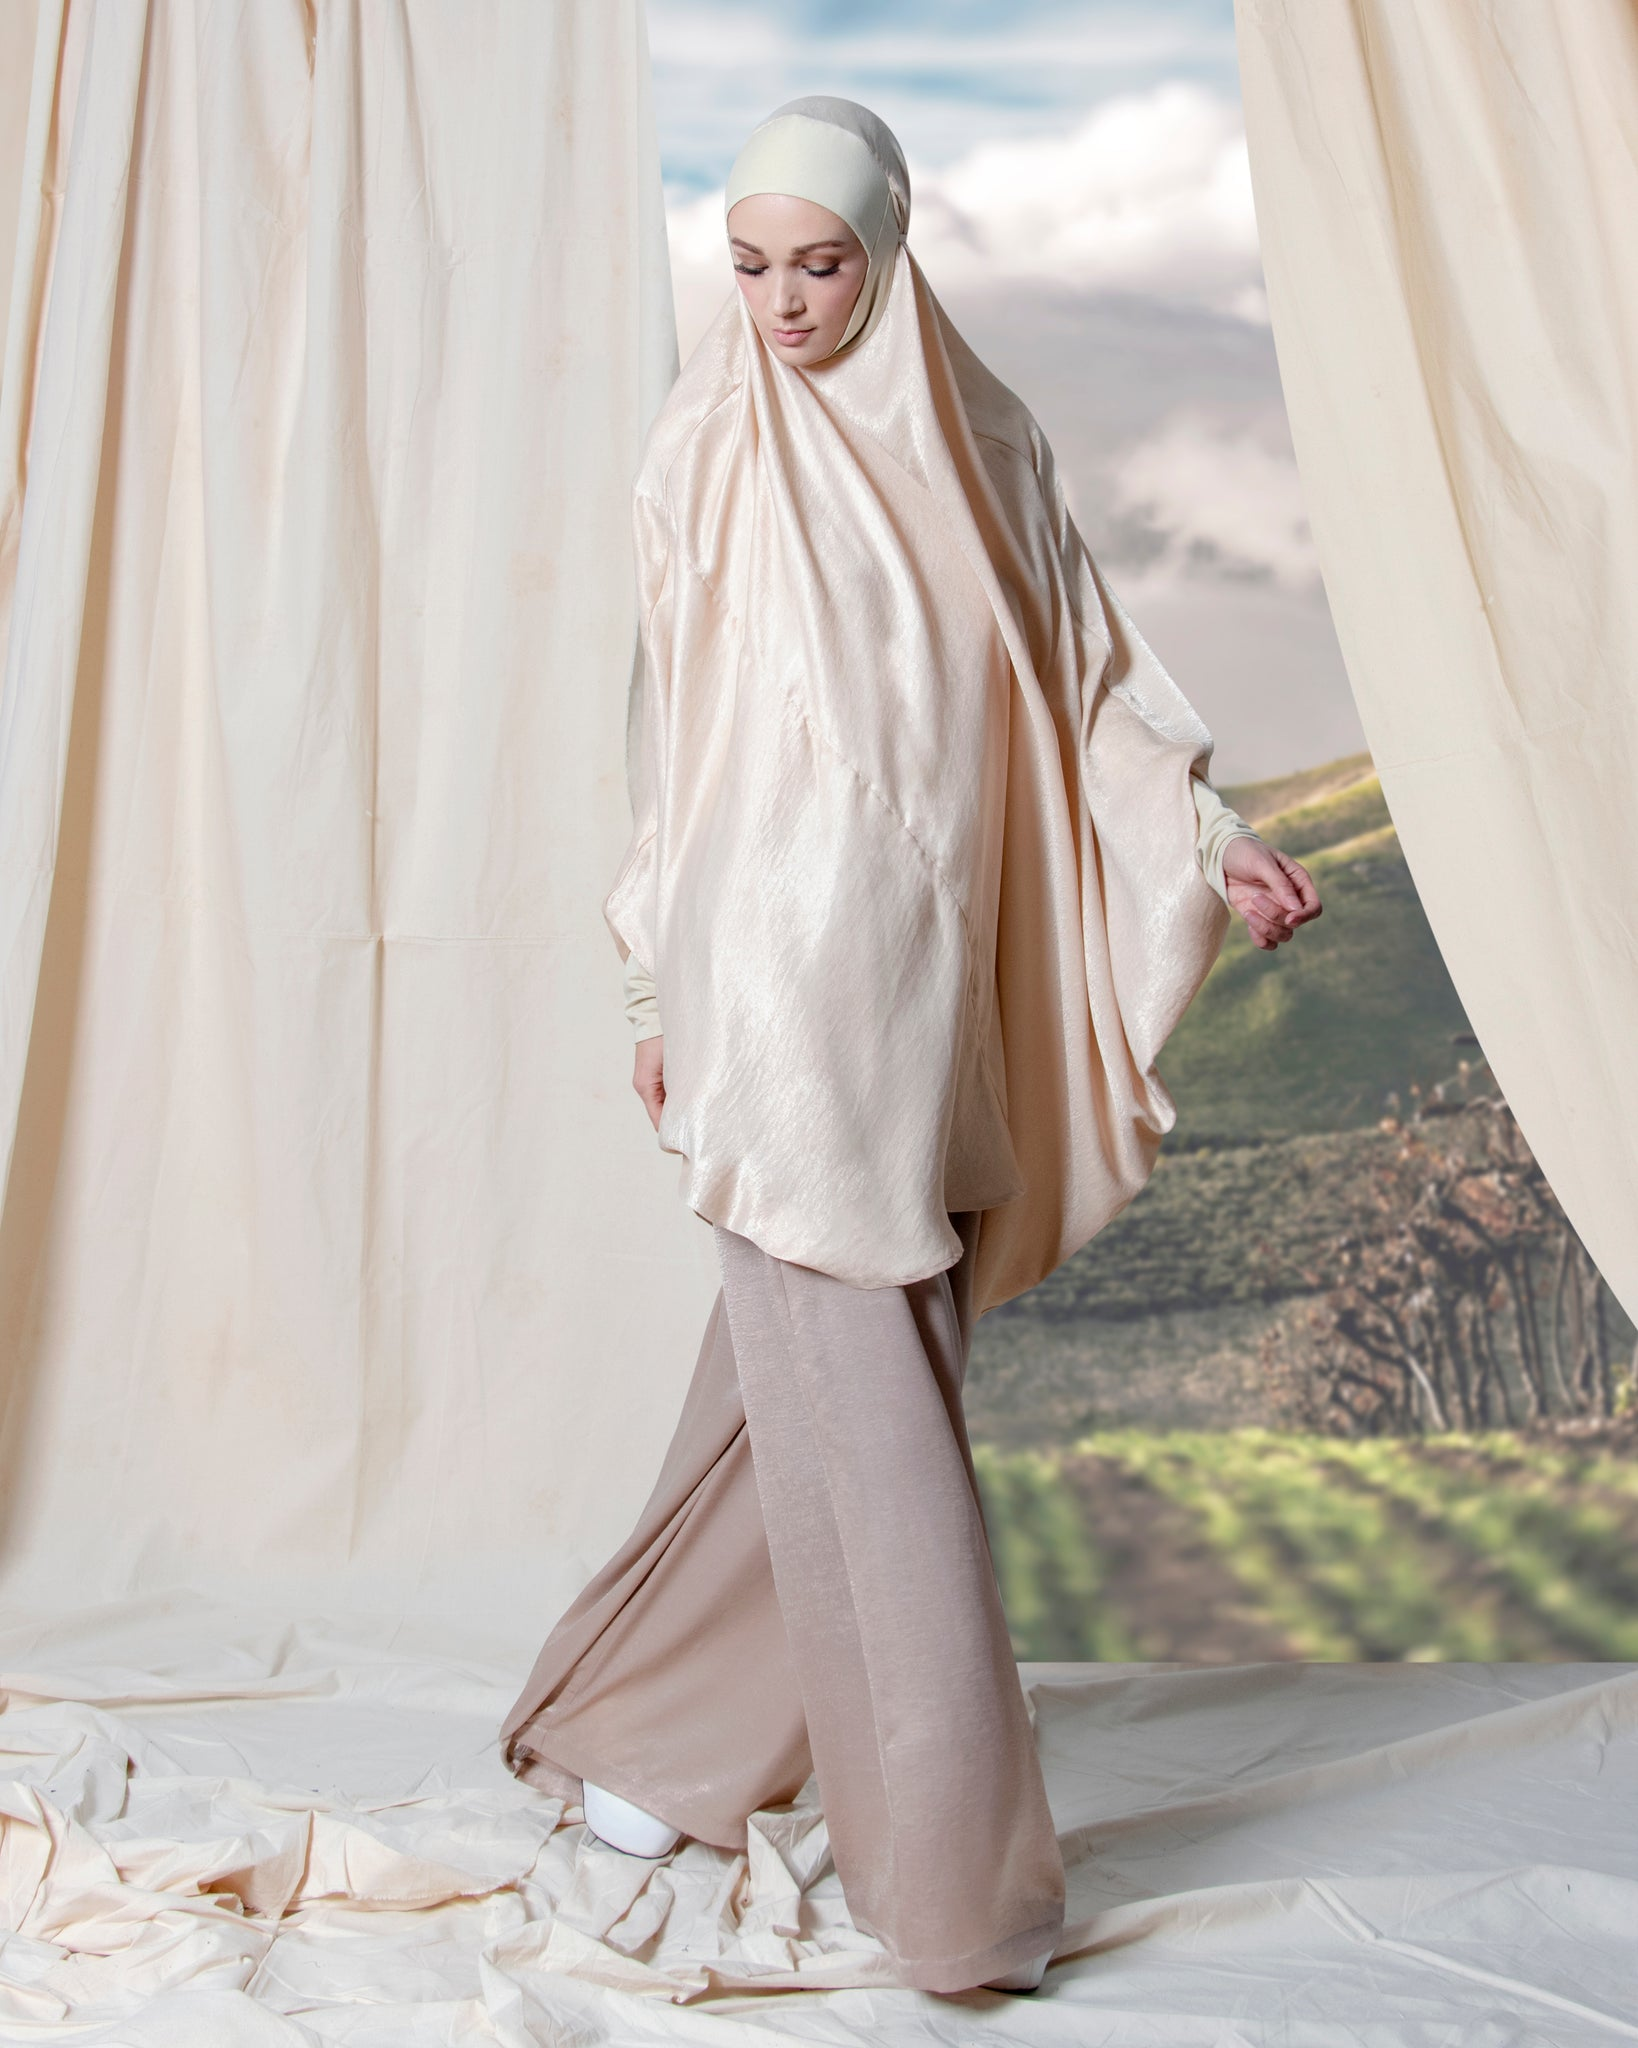 ARJANA Dreamy Pants (Pants for Telekung)